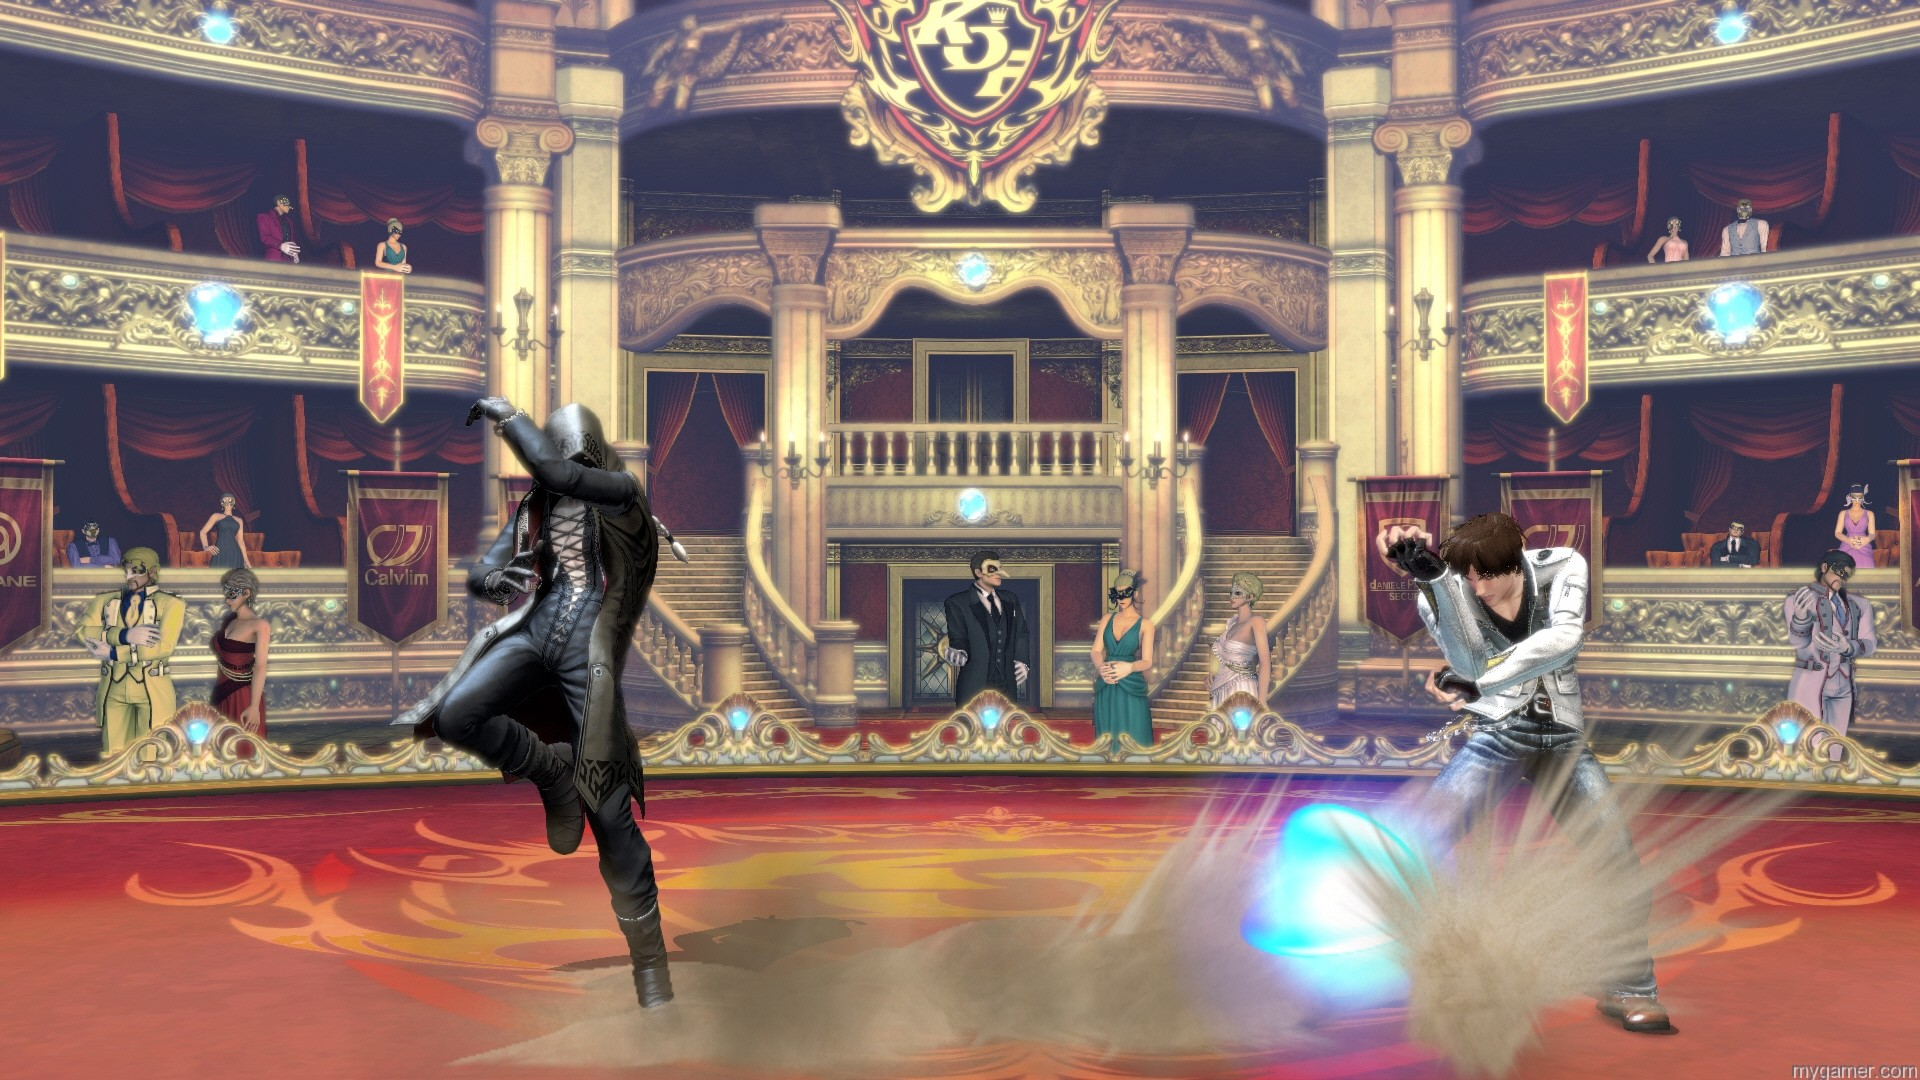 KUKRI_03 Atlus and SNK Are Bringing KOF XIV Exclusively to PS4 in America Atlus and SNK Are Bringing KOF XIV Exclusively to PS4 in America KUKRI 03